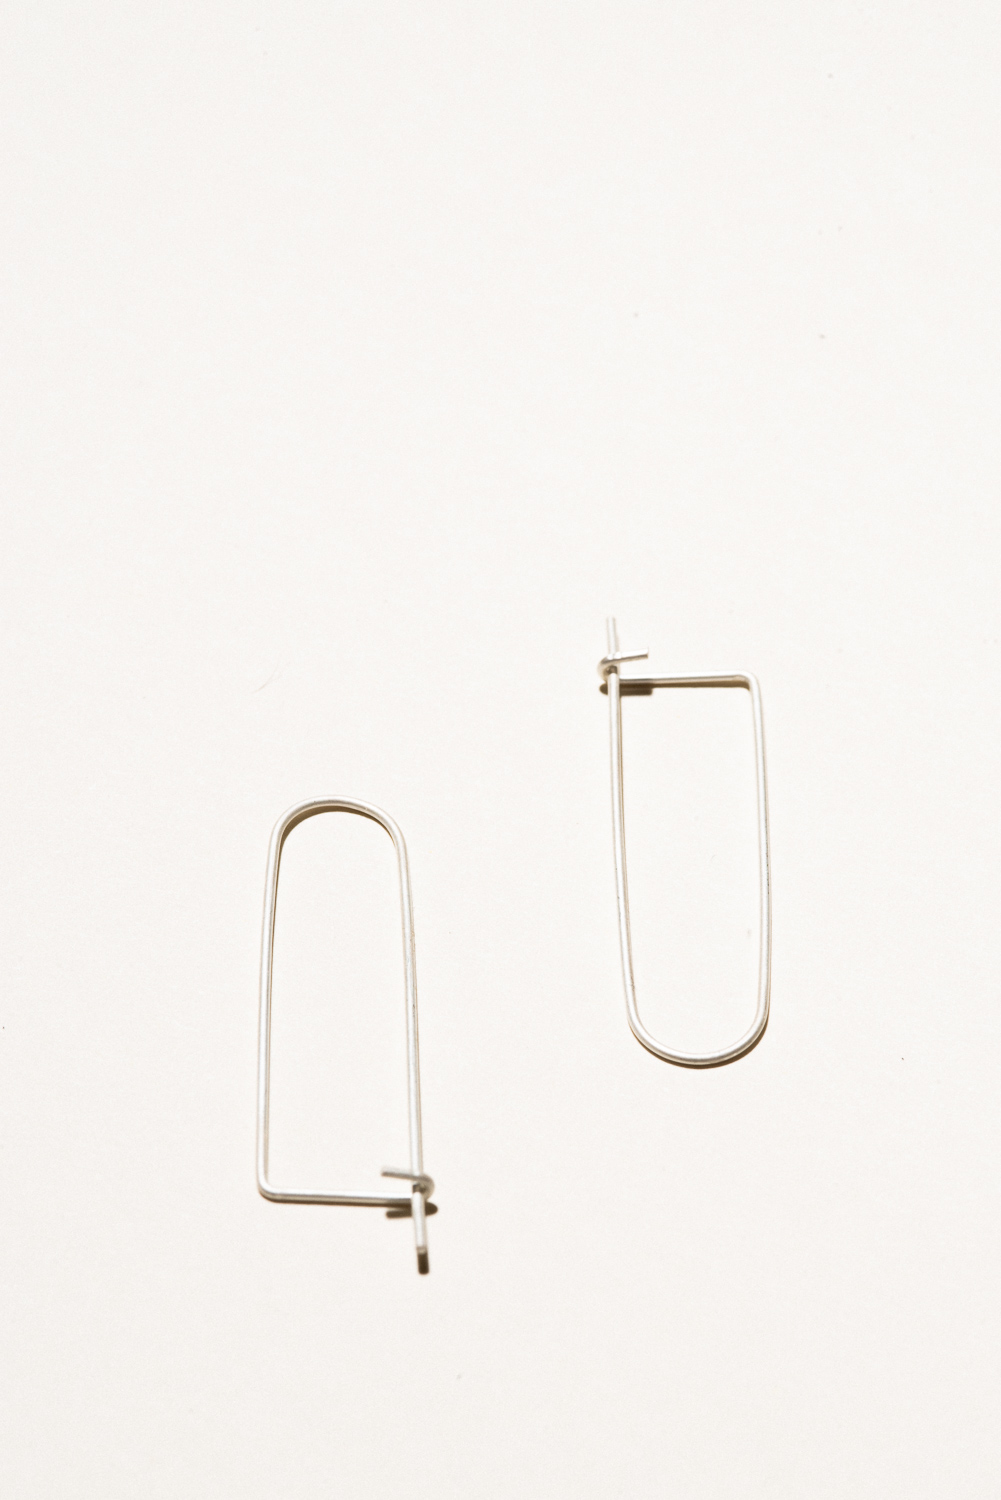 Silver Clippie Earrings - 1.5in longSterling Silver, Raw FinishHand Smithed$40